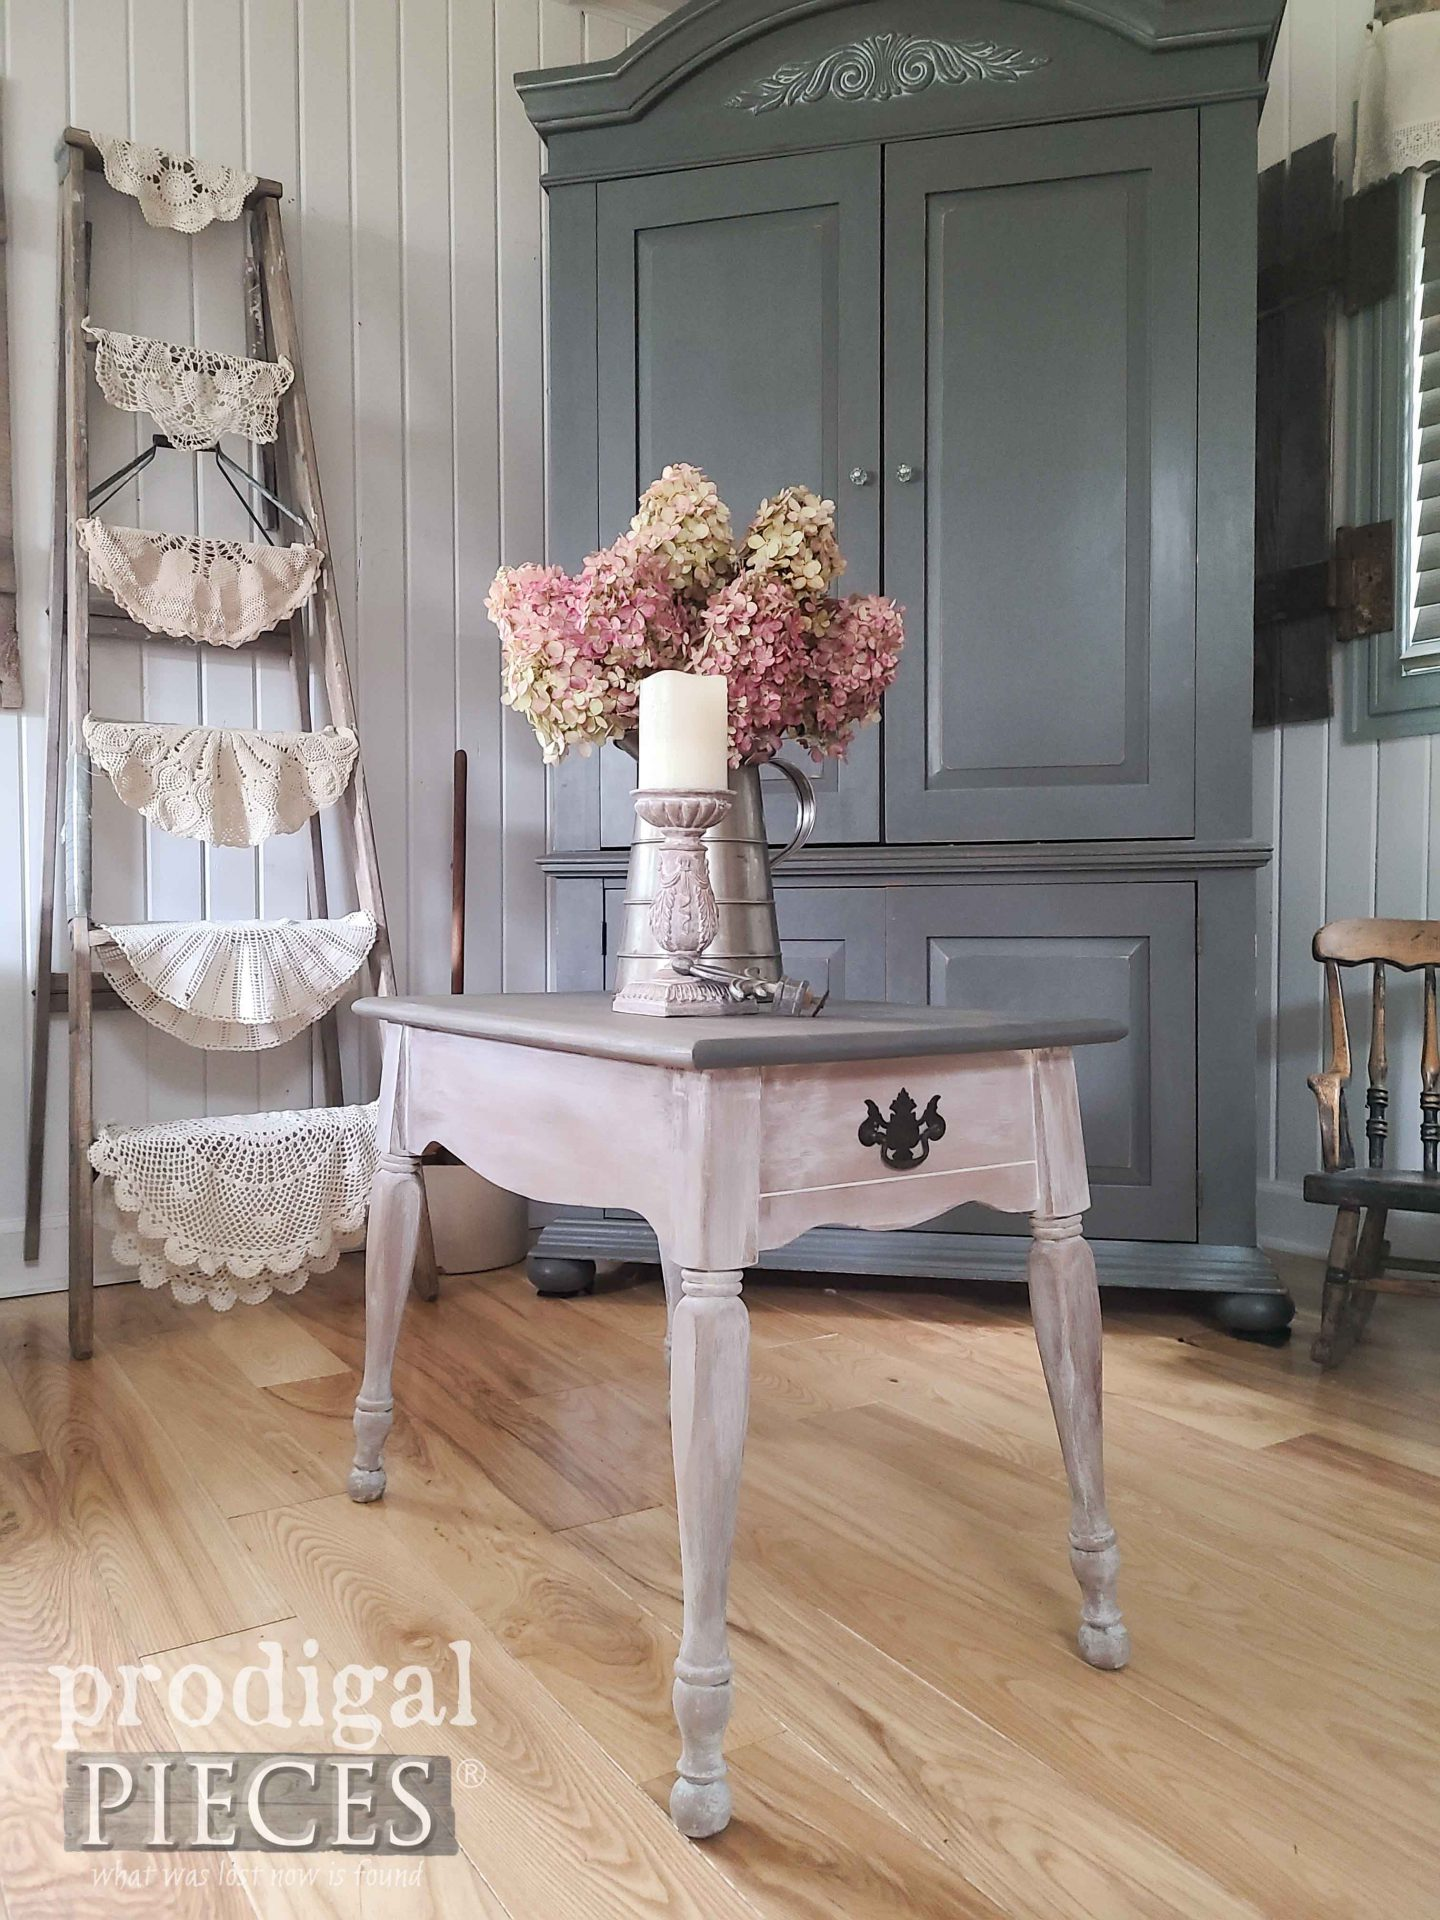 Vintage Farmhouse Table Makeover with DIY Steps by Larissa of Prodigal Pieces | prodigalpieces.com #prodigalpieces #furniture #home #vintage #farmhouse